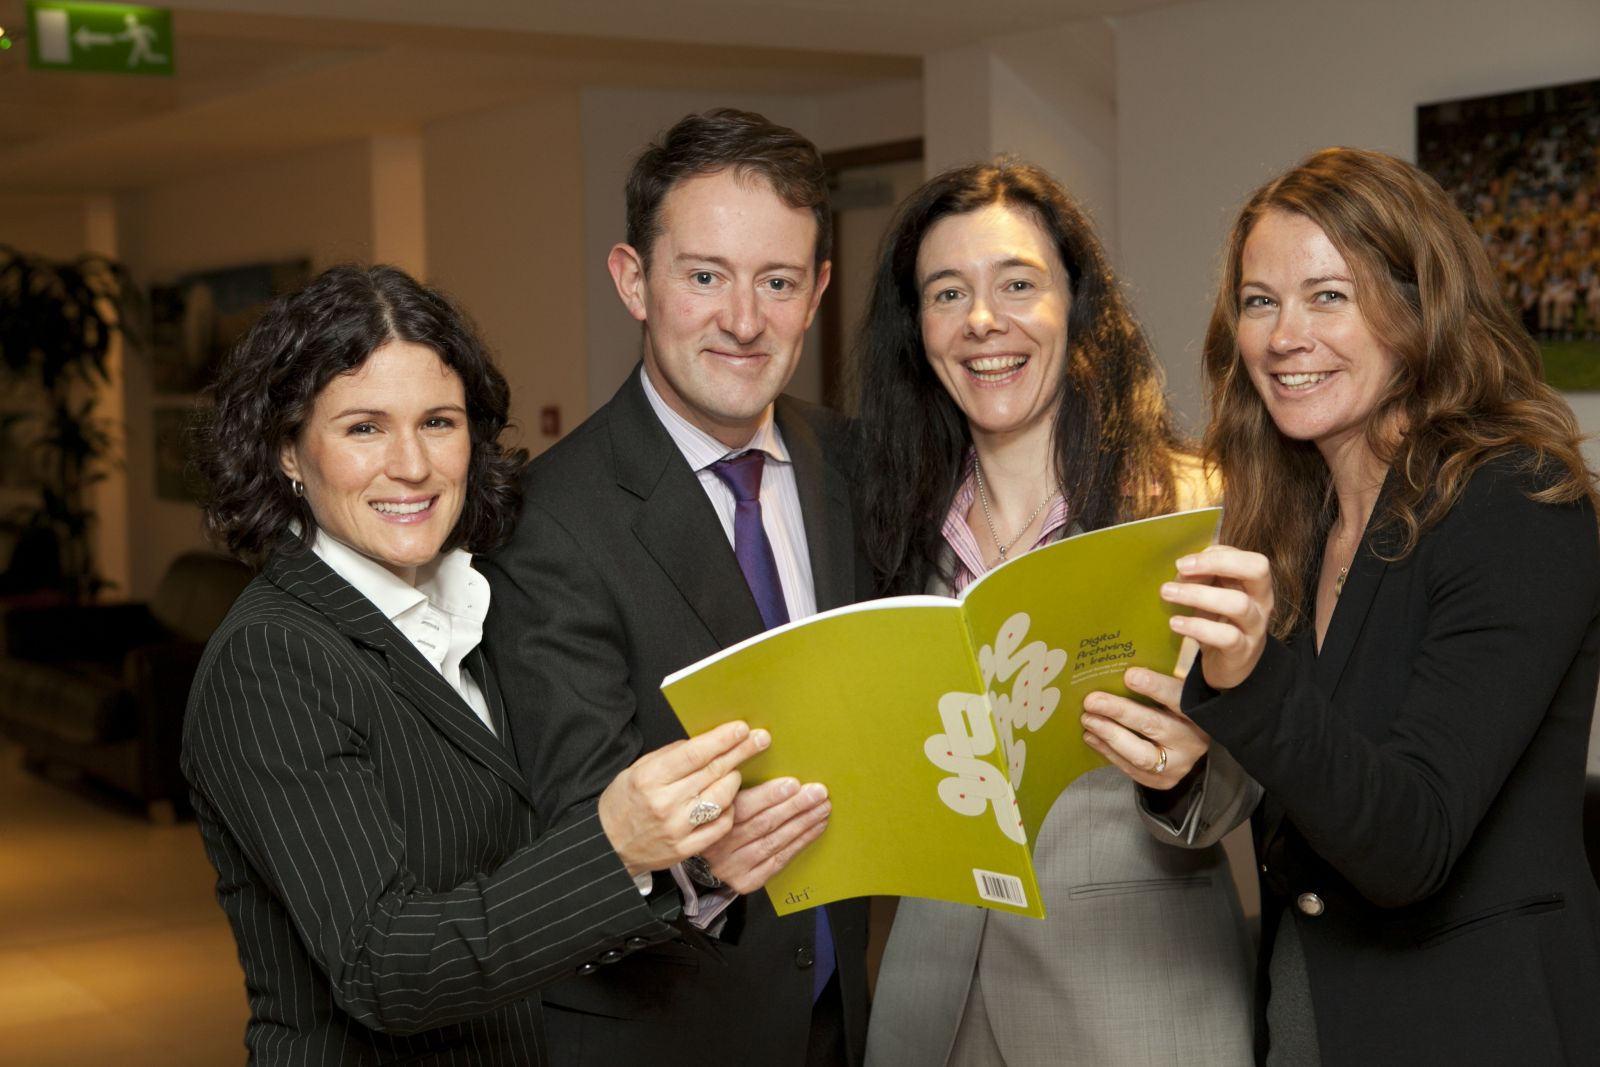 Minister Sherlock and members of the DRI team